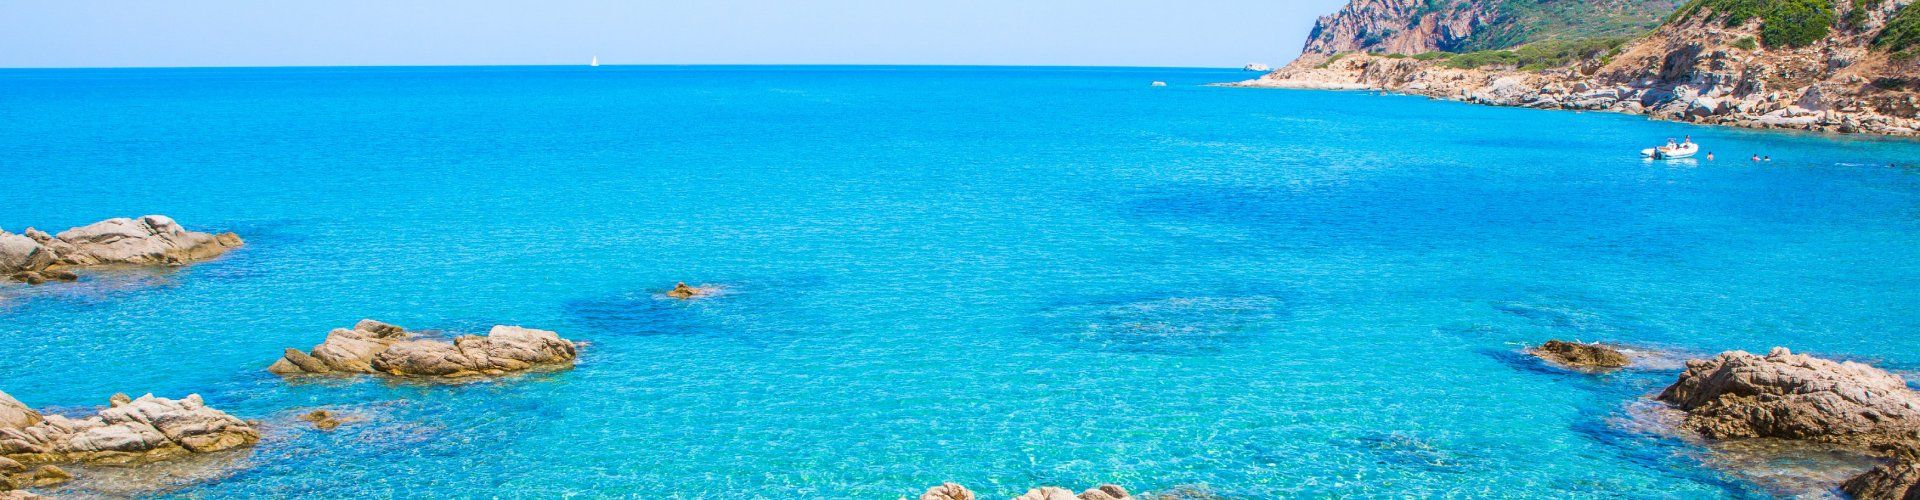 Crystal clear water at Capo Ferrato lets you see to the bottom of the sea